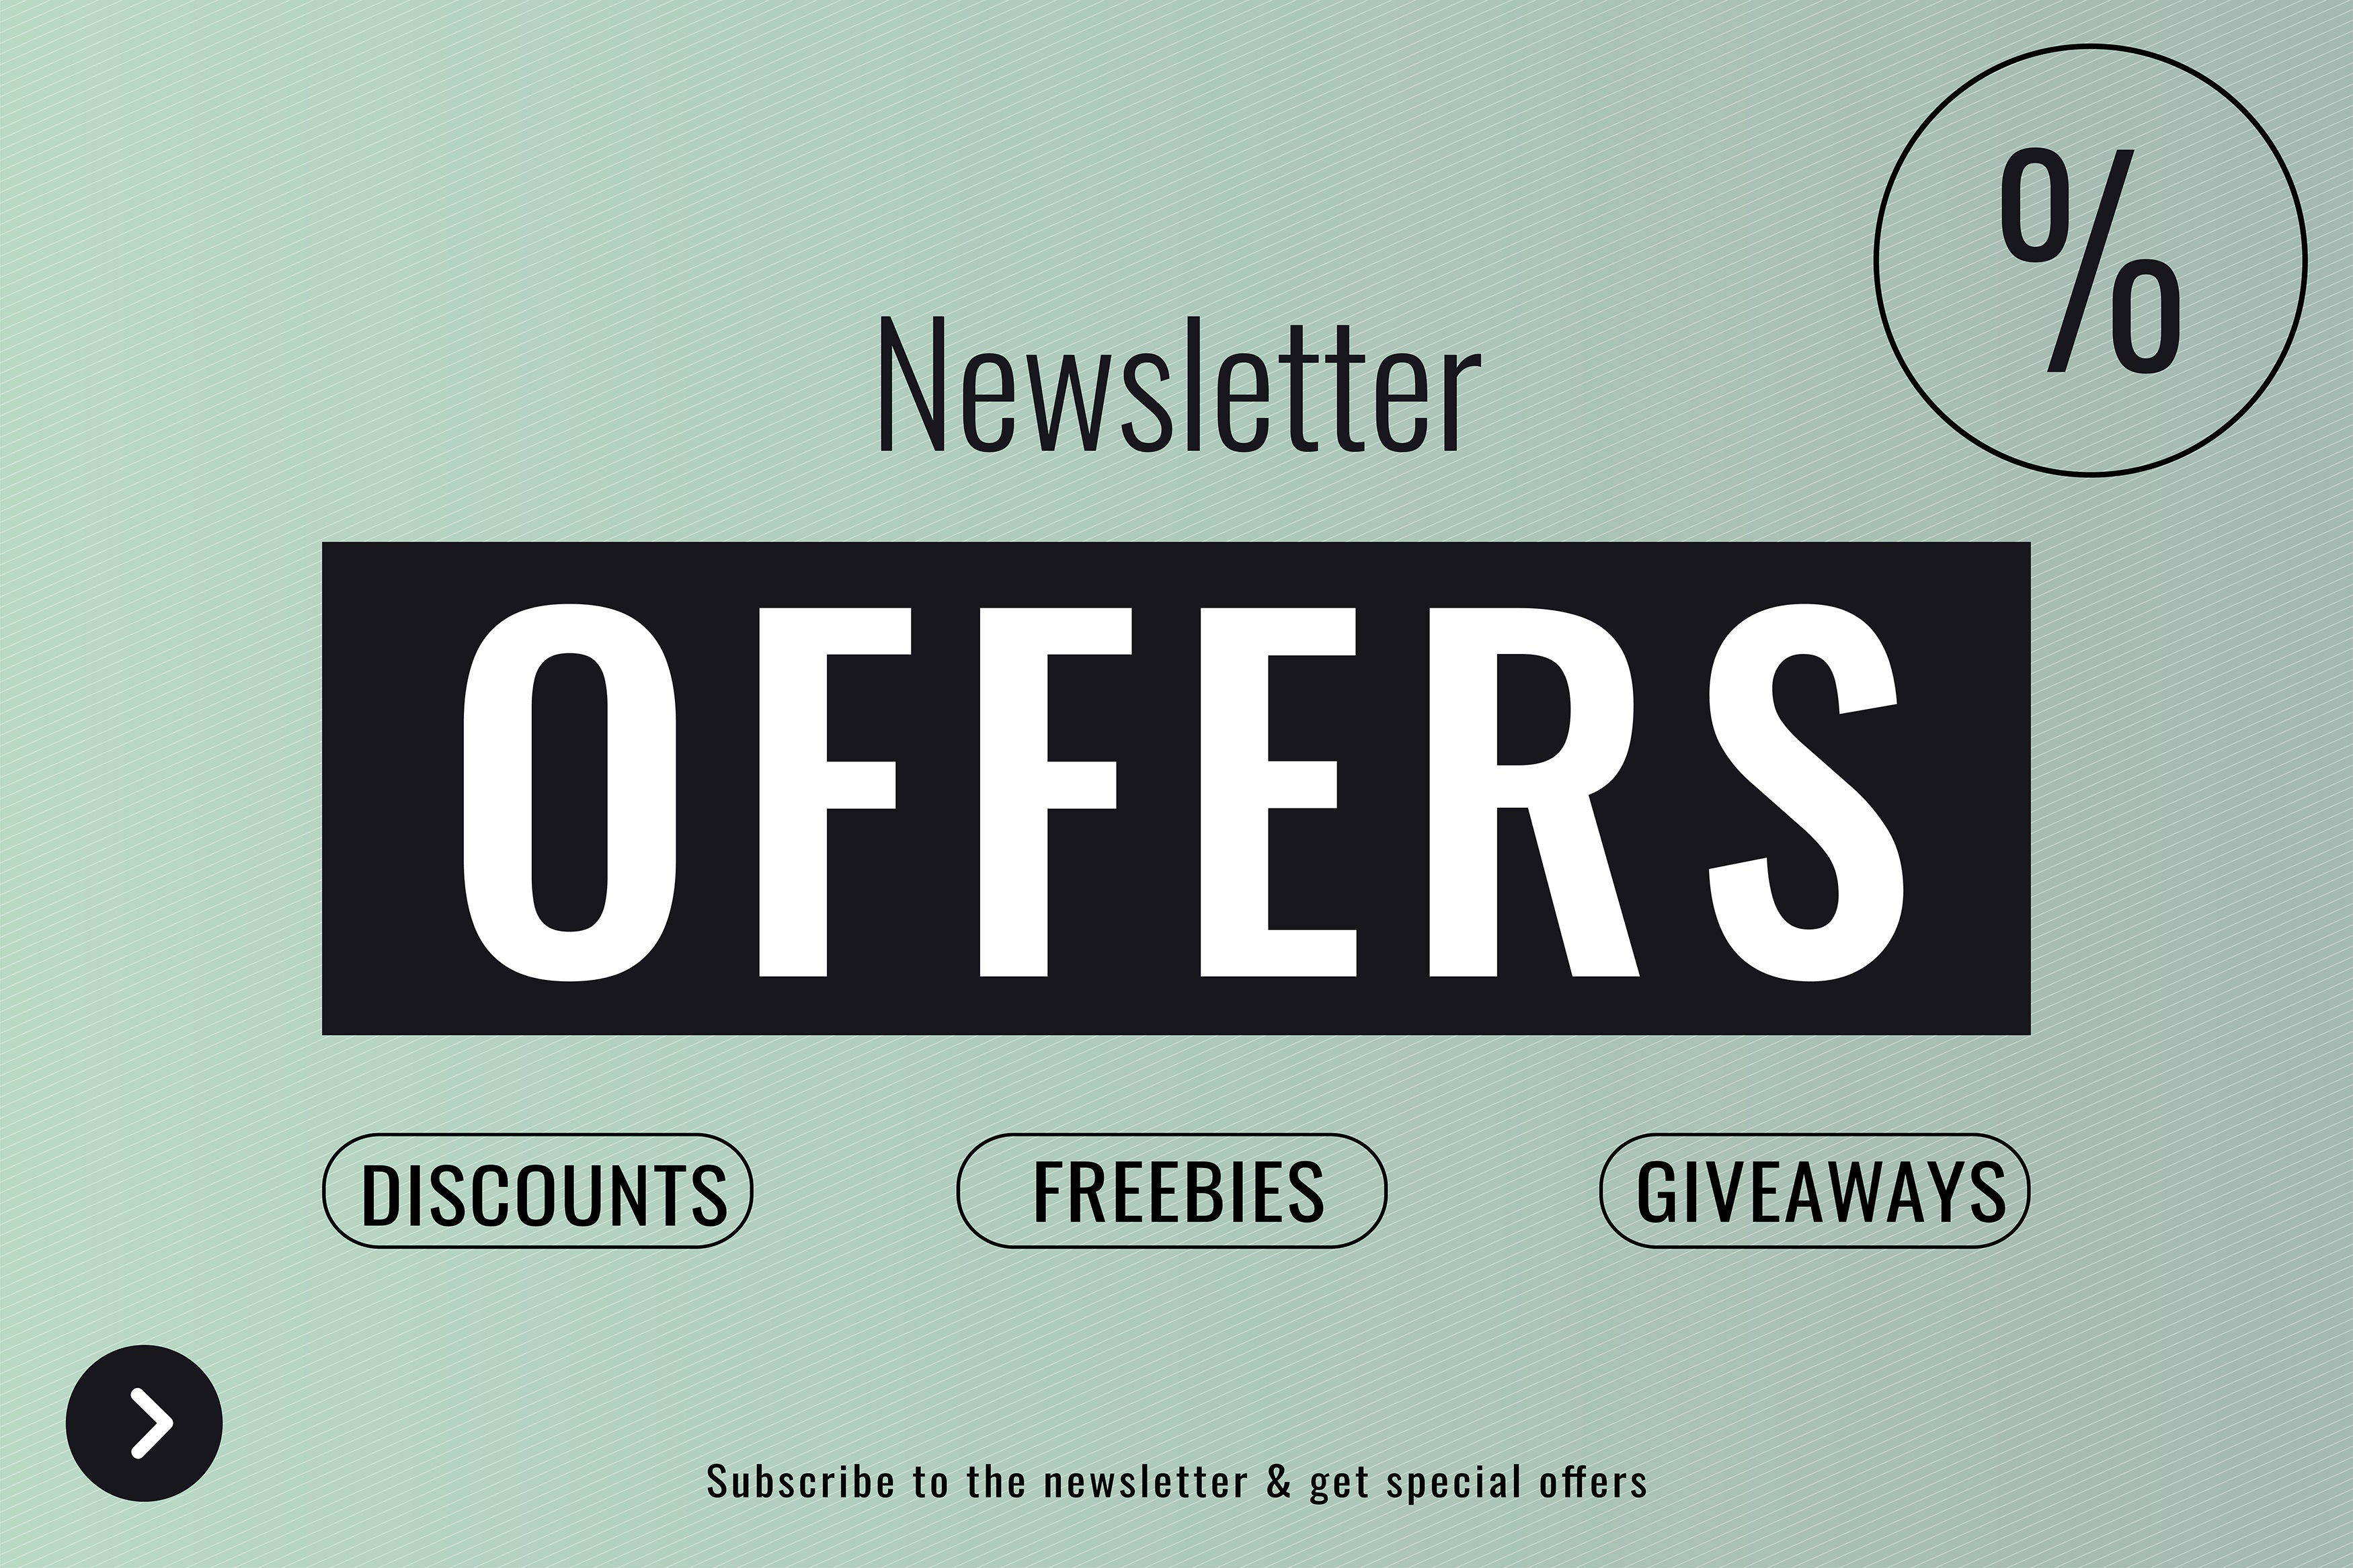 toffu-newsletter-offers